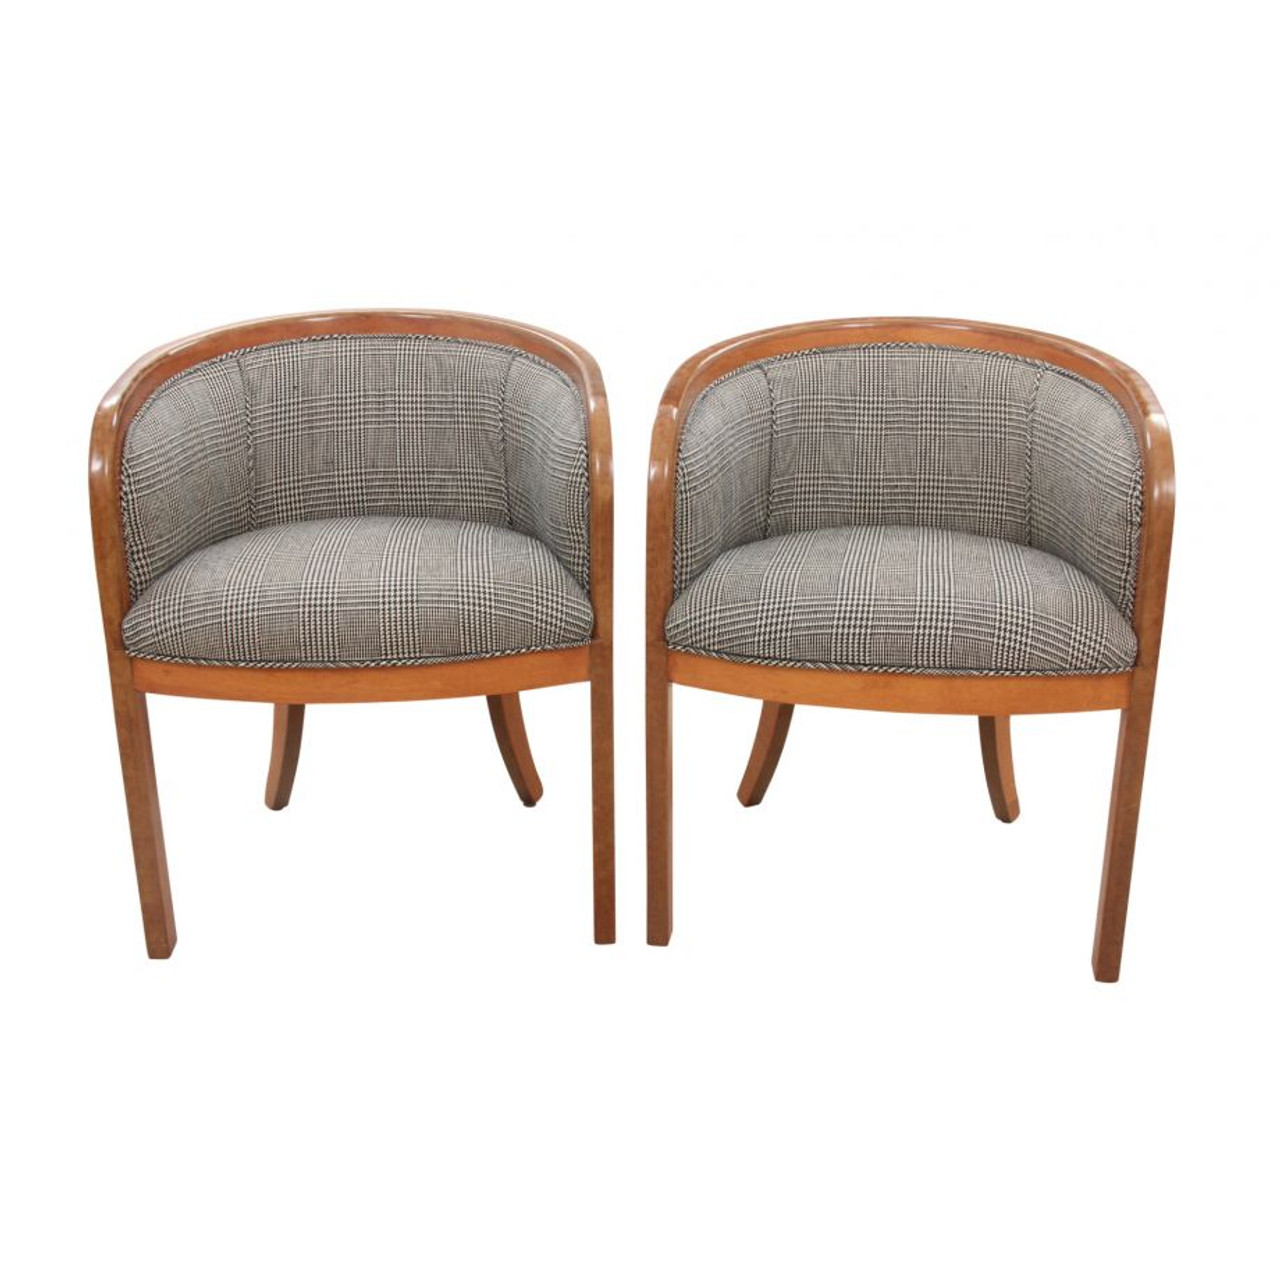 Image of: Mid Century Bentwood Armchairs Pair